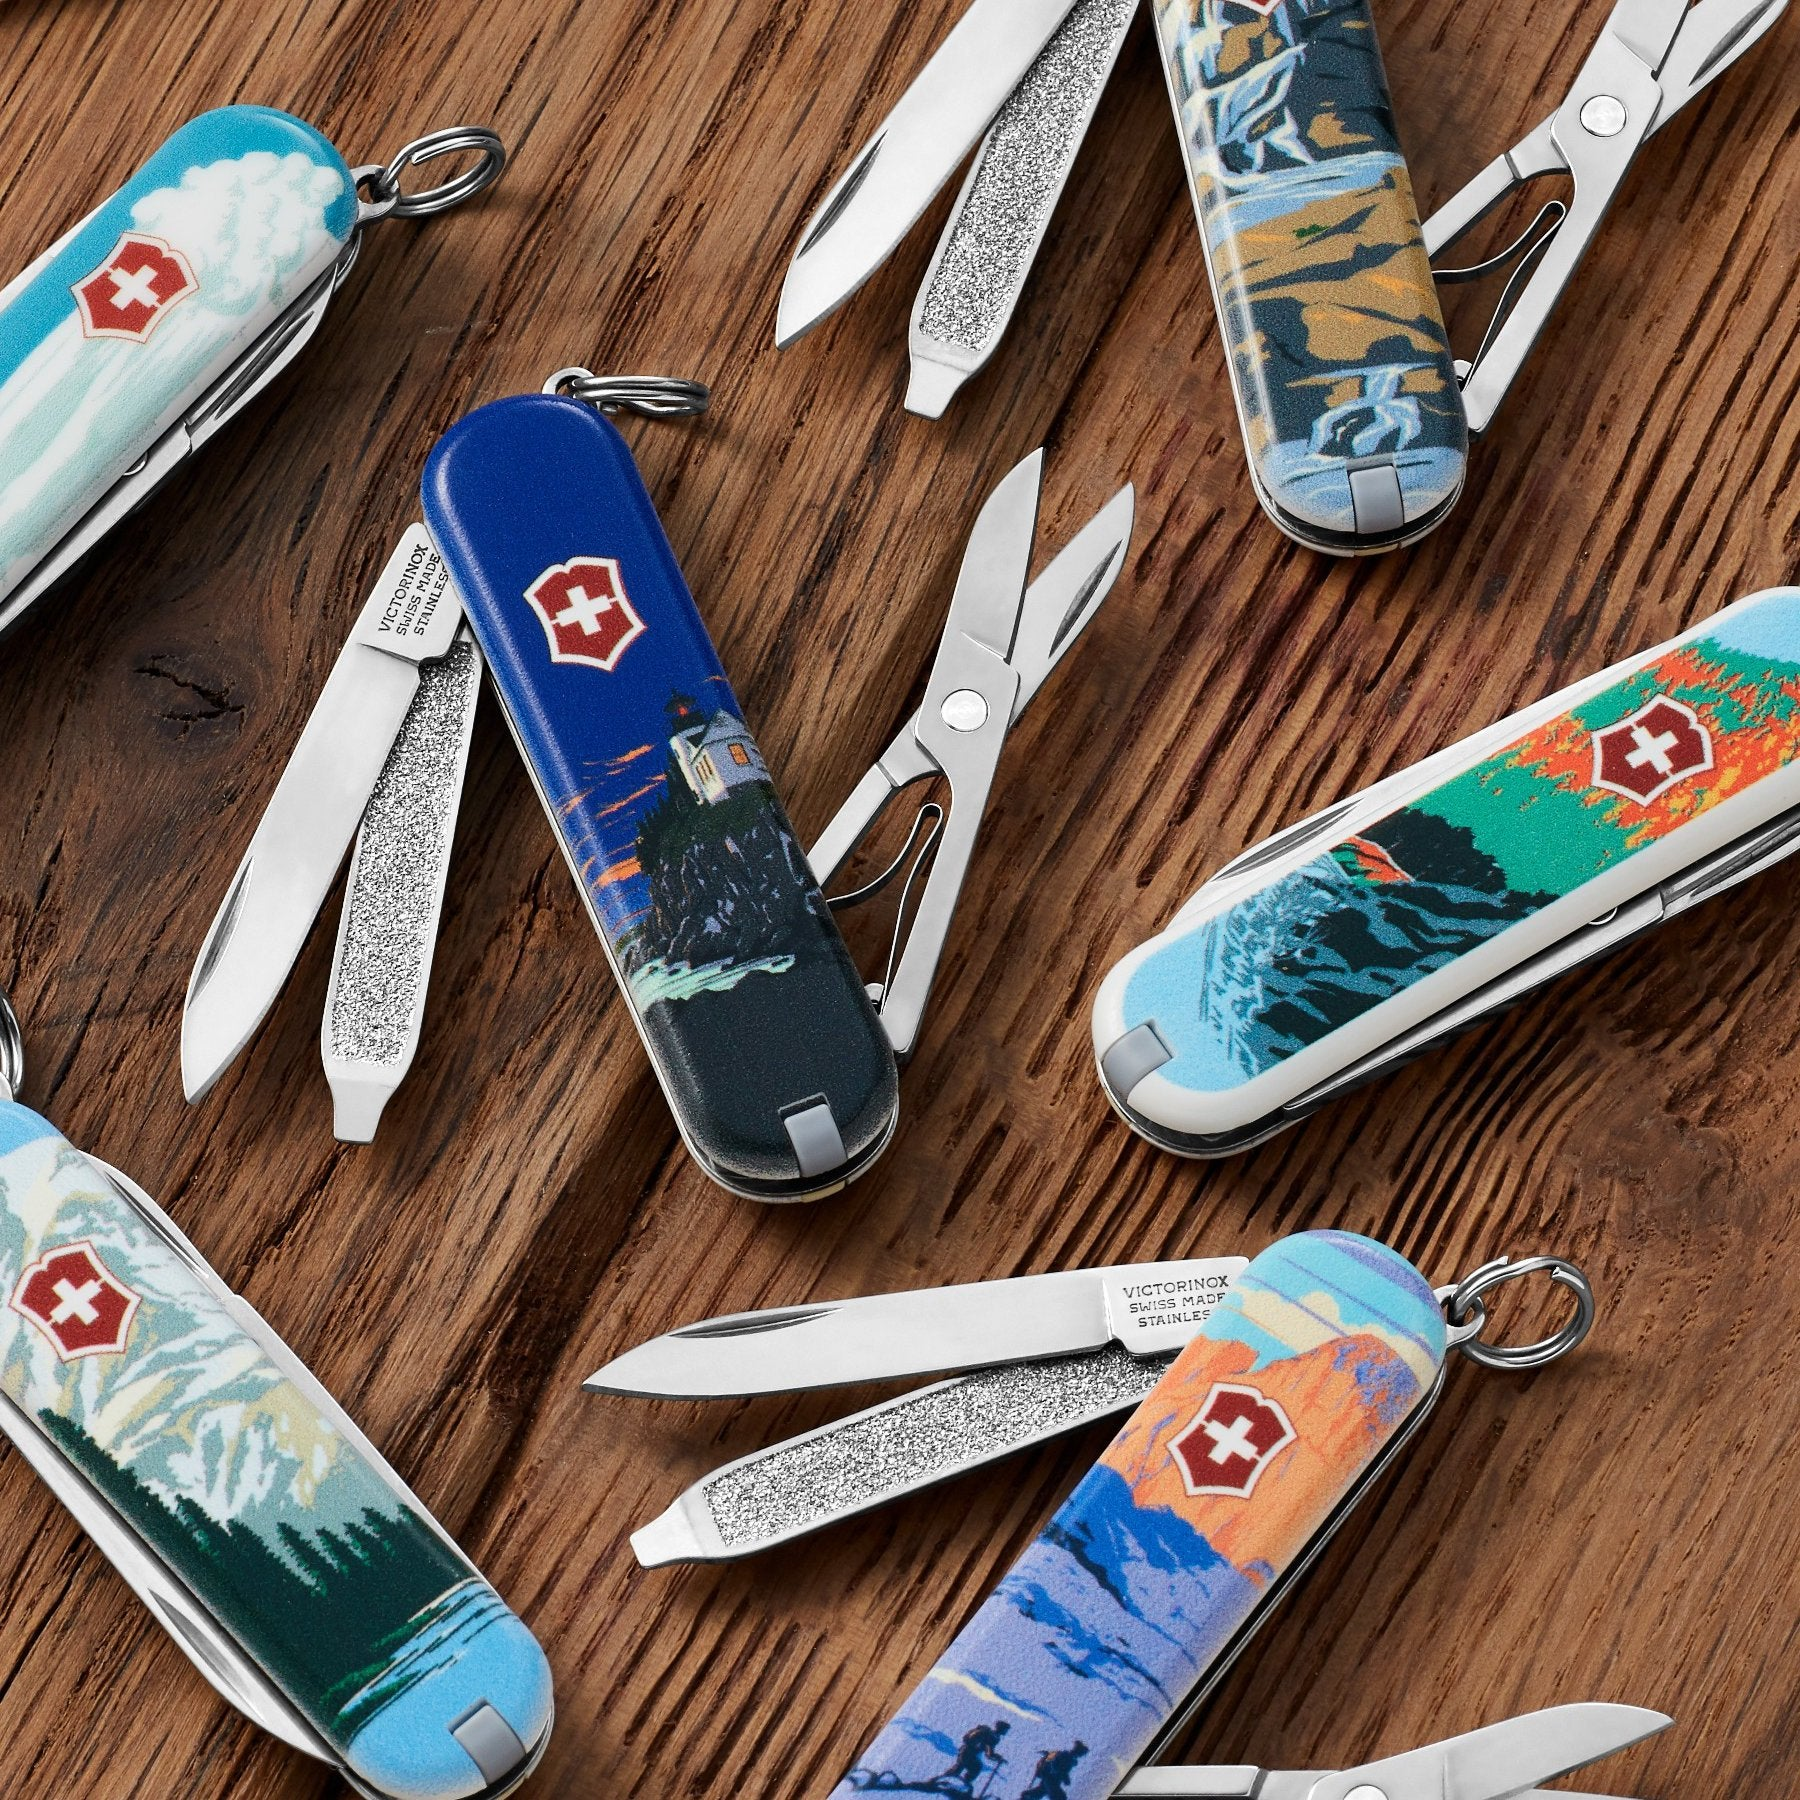 Swiss Army Knife Collections by Victorinox at Swiss Knife Shop